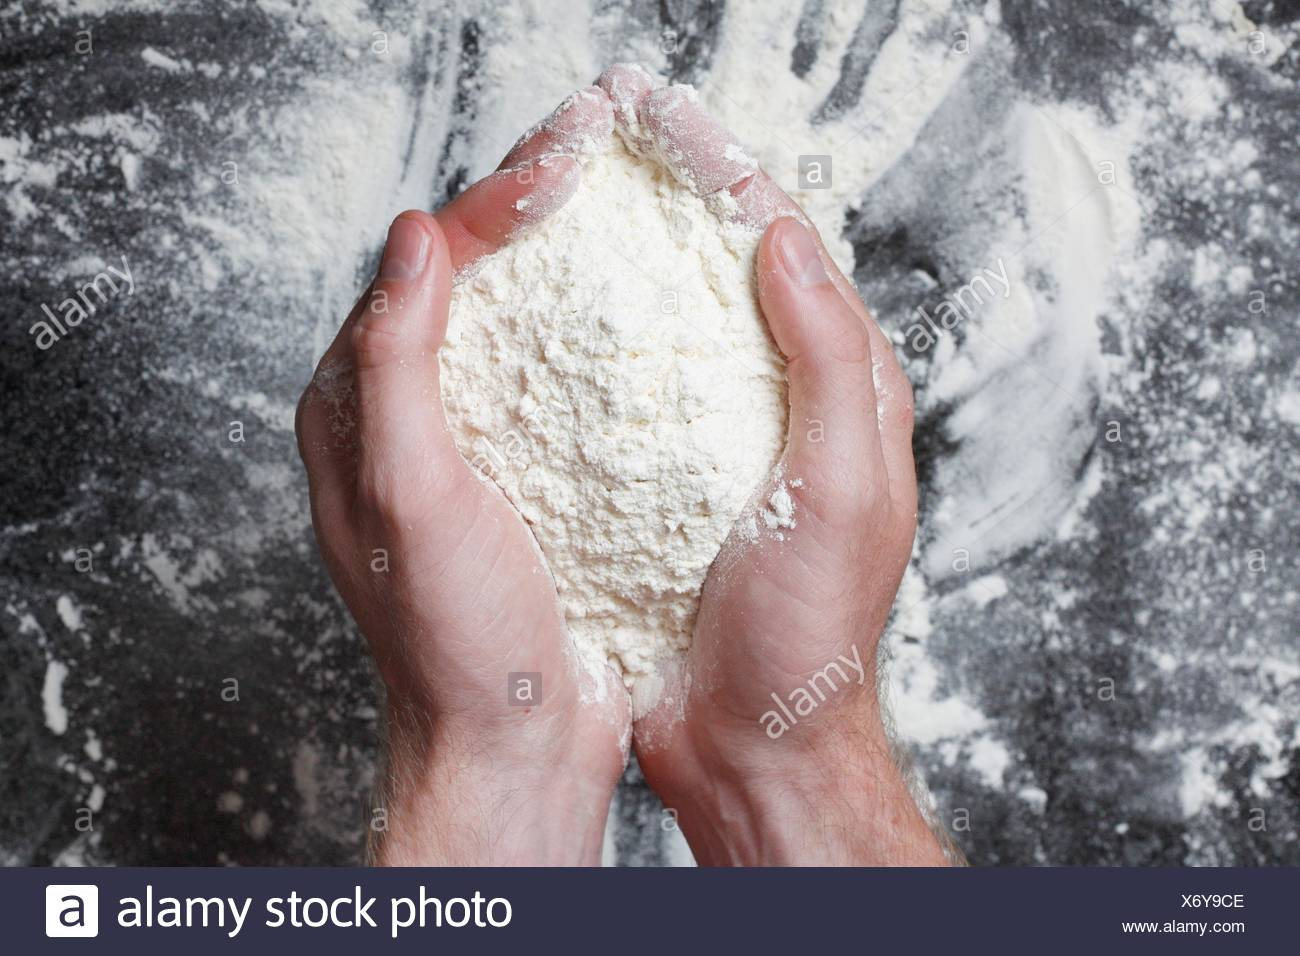 Hands holding white wheat flour - Stock Image